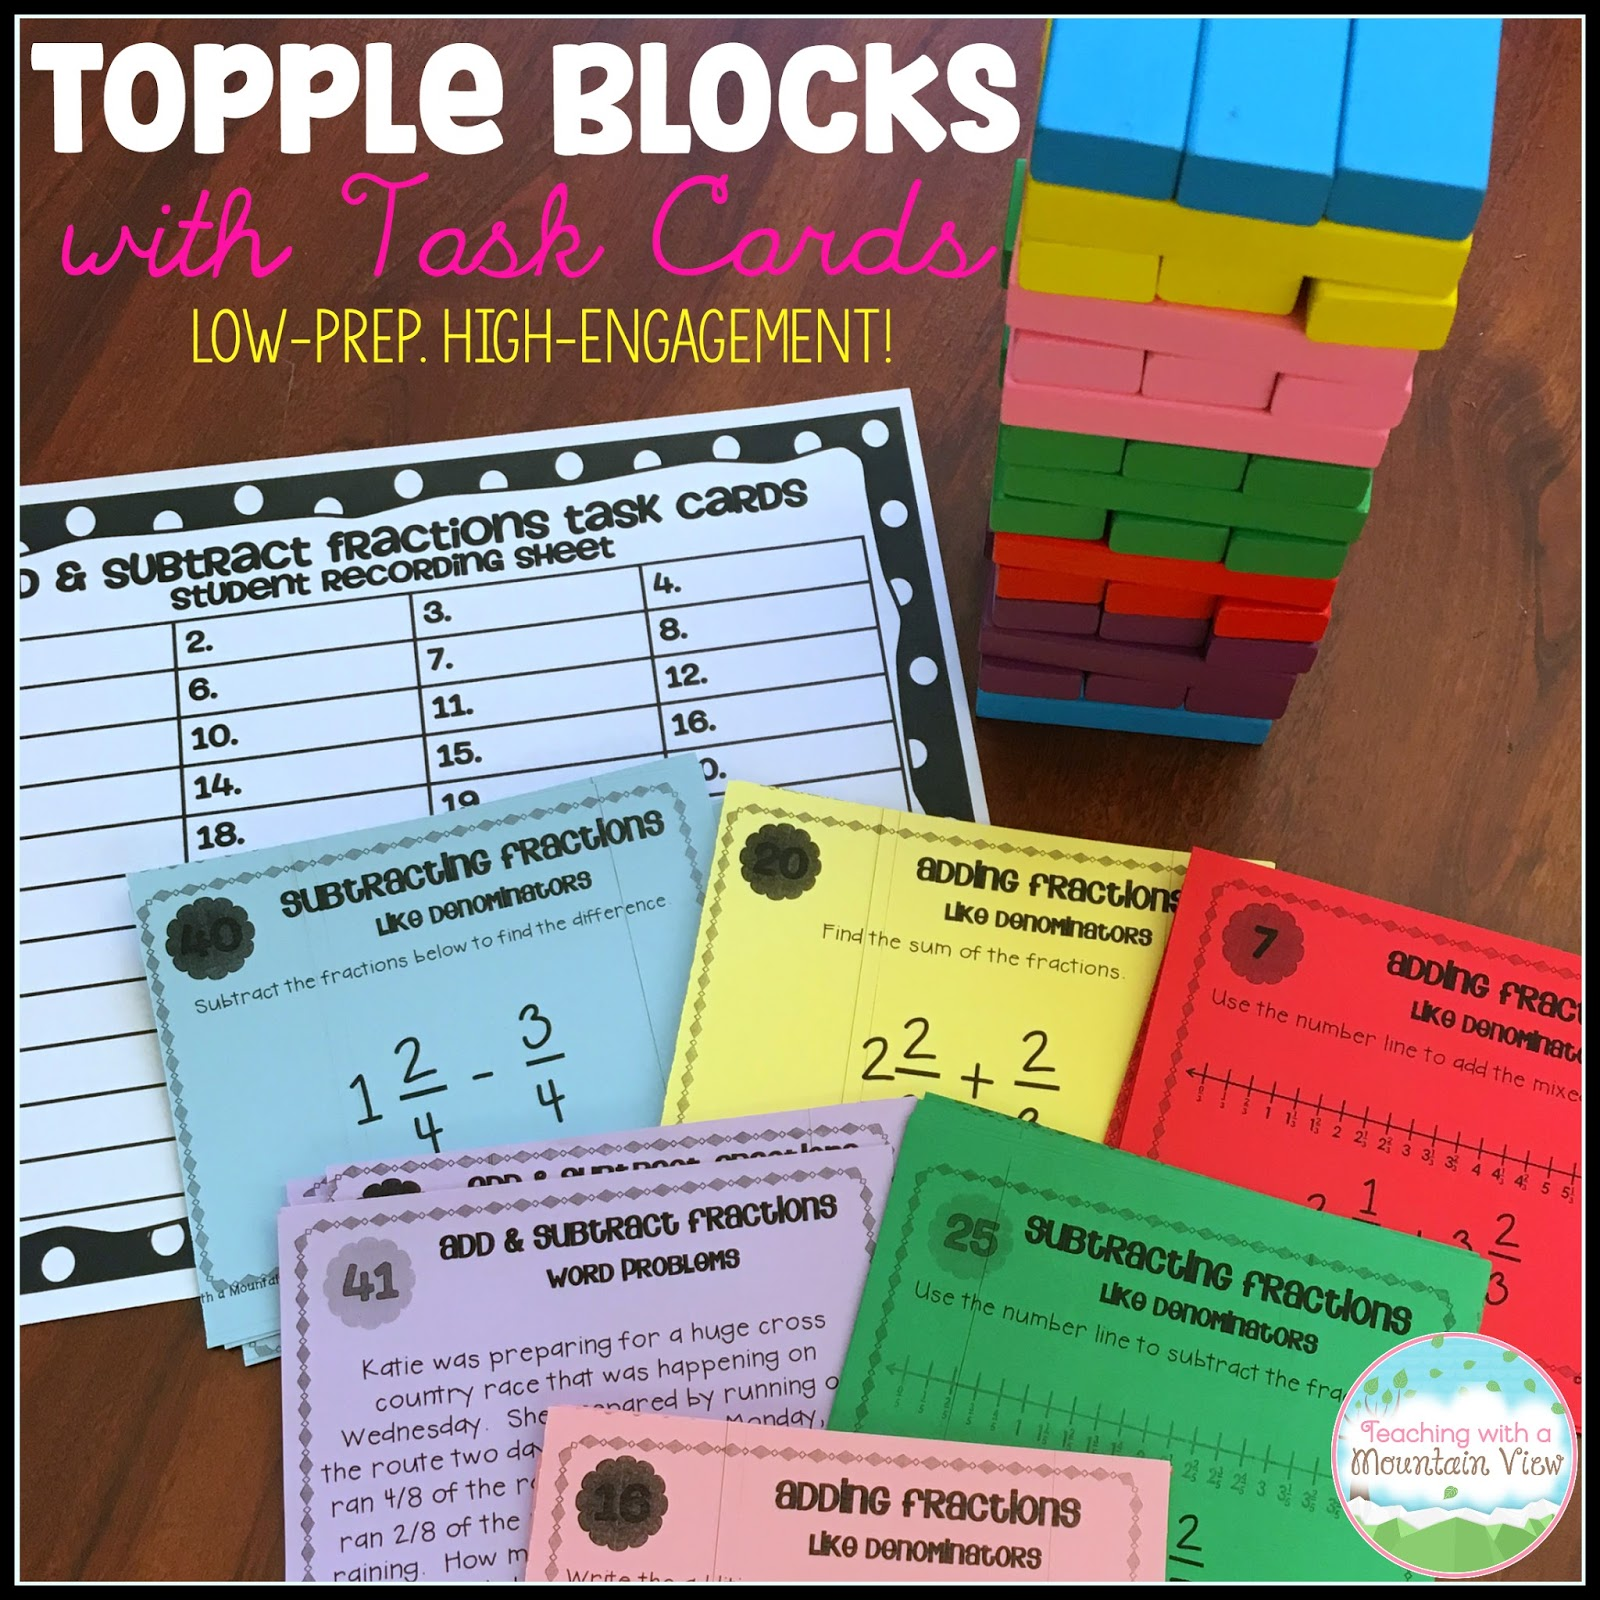 Teaching With A Mountain View: Using Topple Blocks With